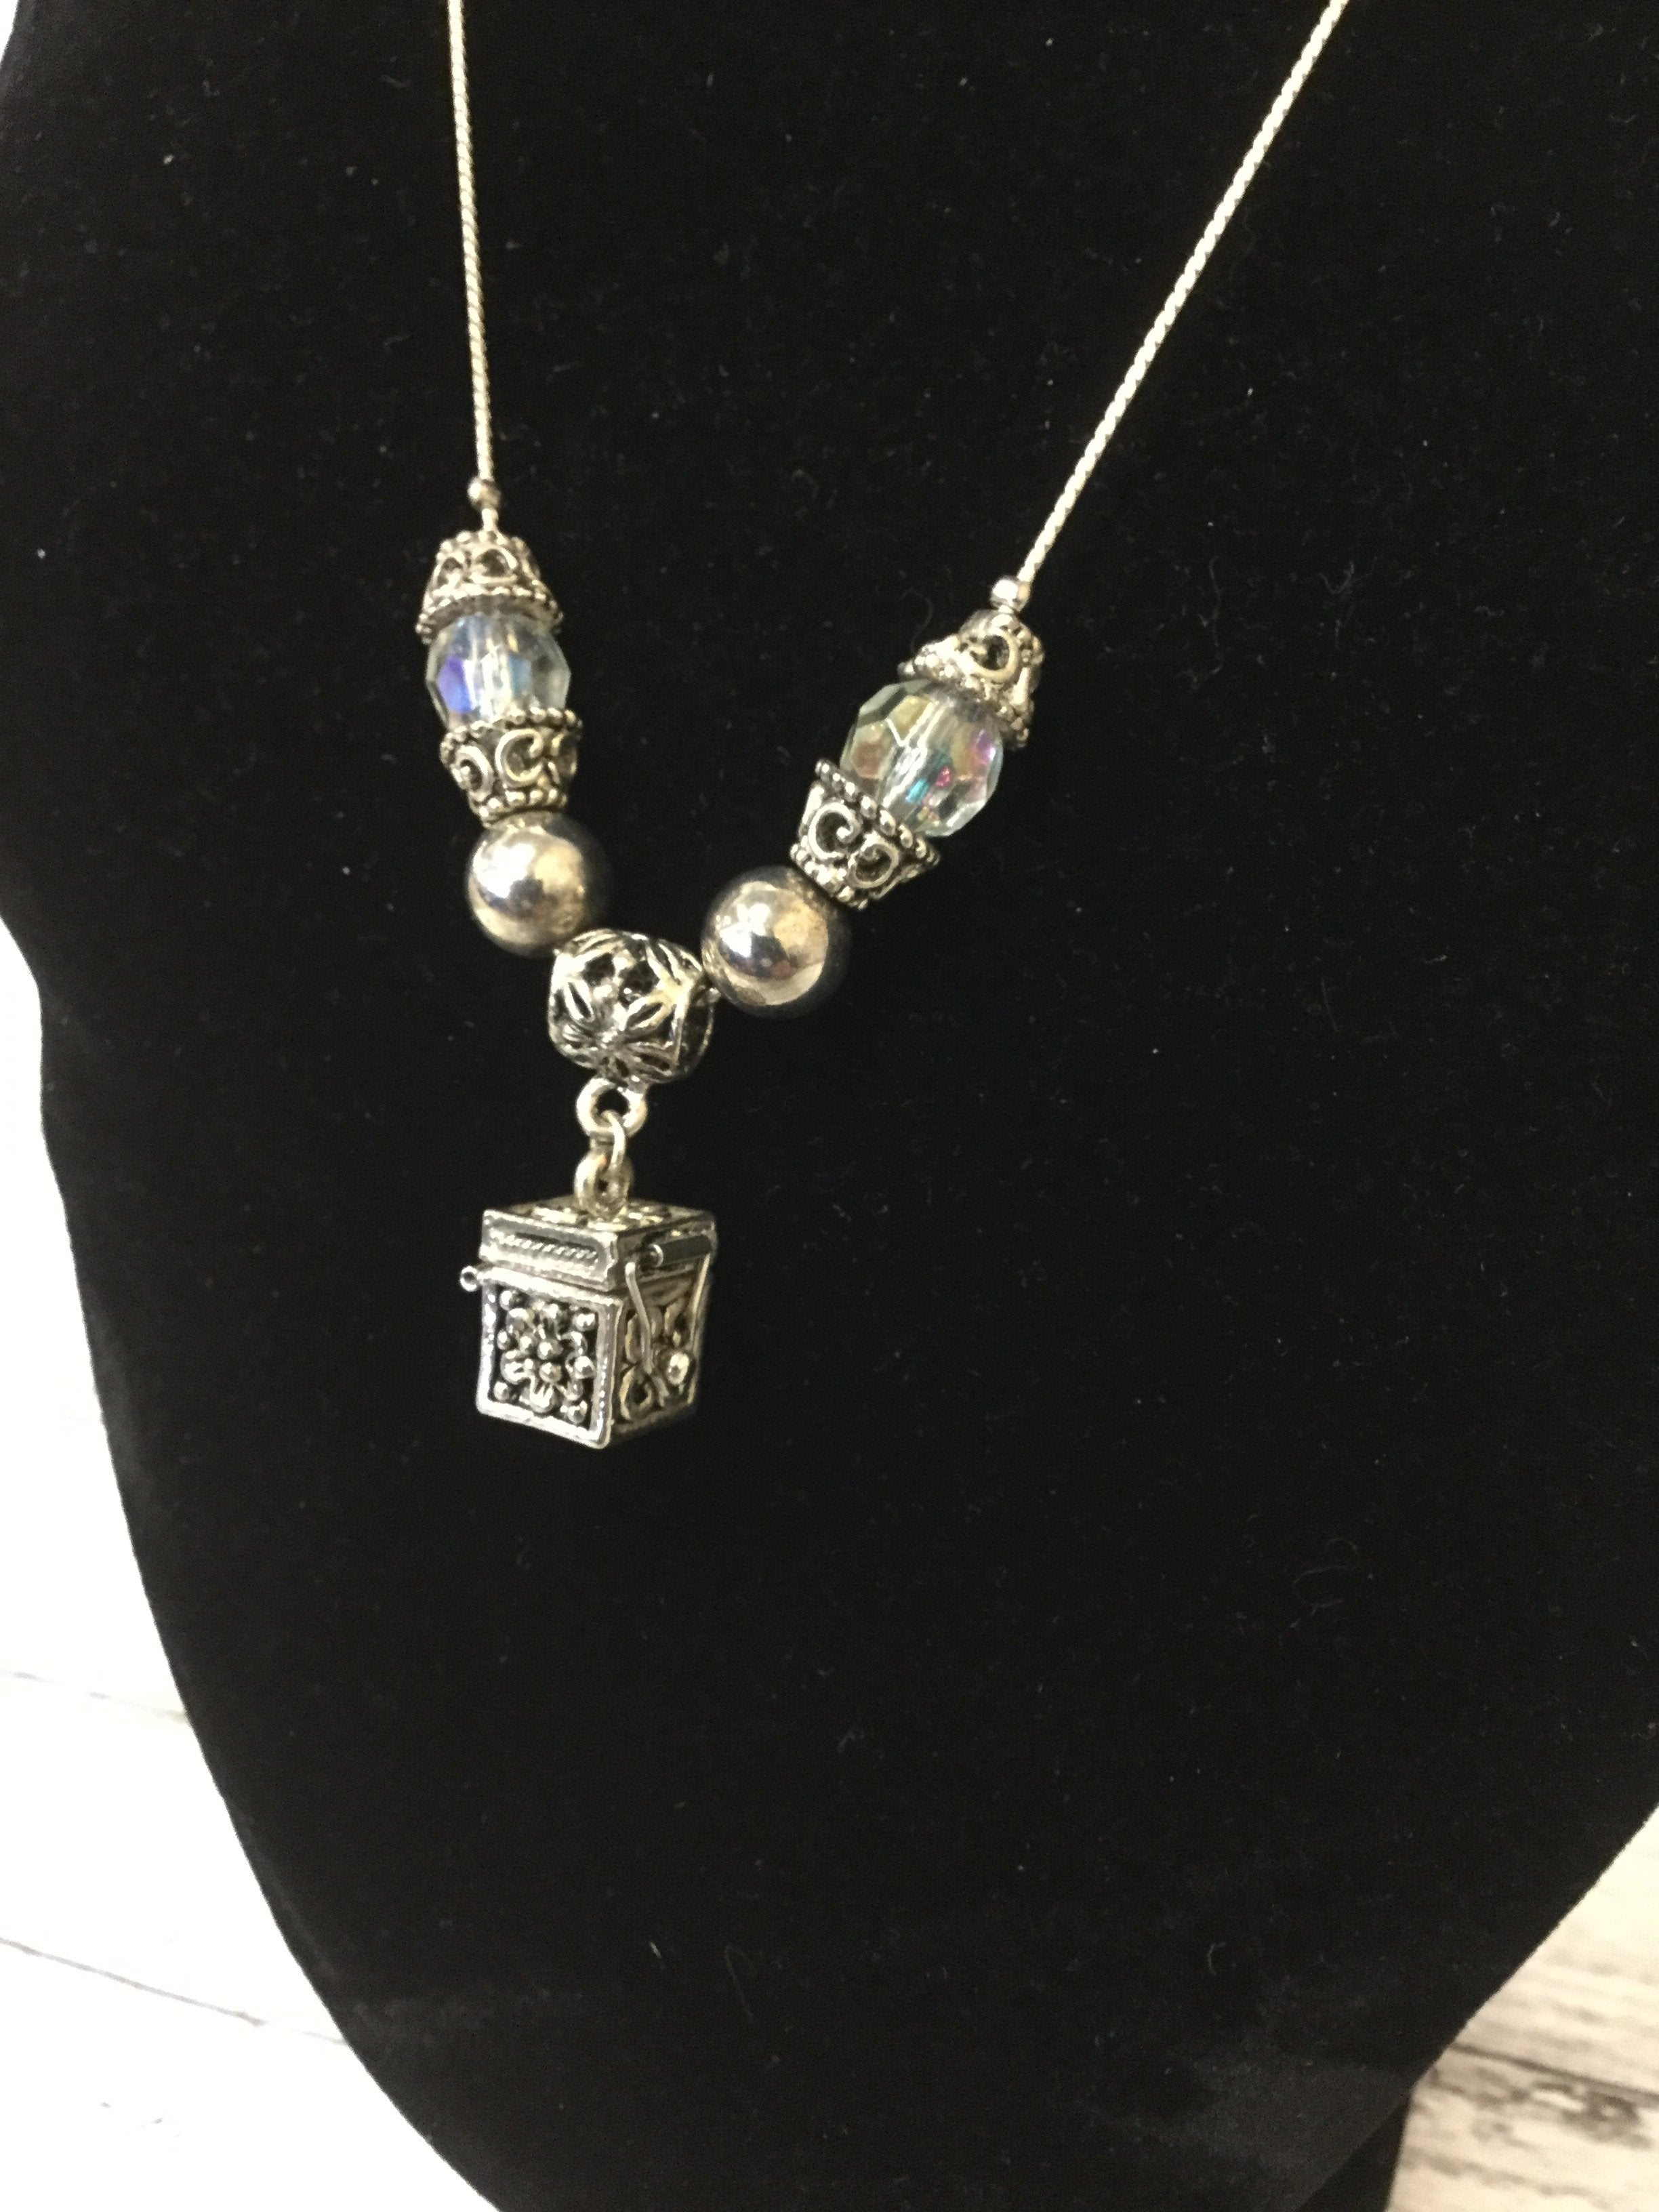 Photo #1 - , style: necklace , color: silver , other info: silver  box , sku: 125-4893, features a silver box that opens.